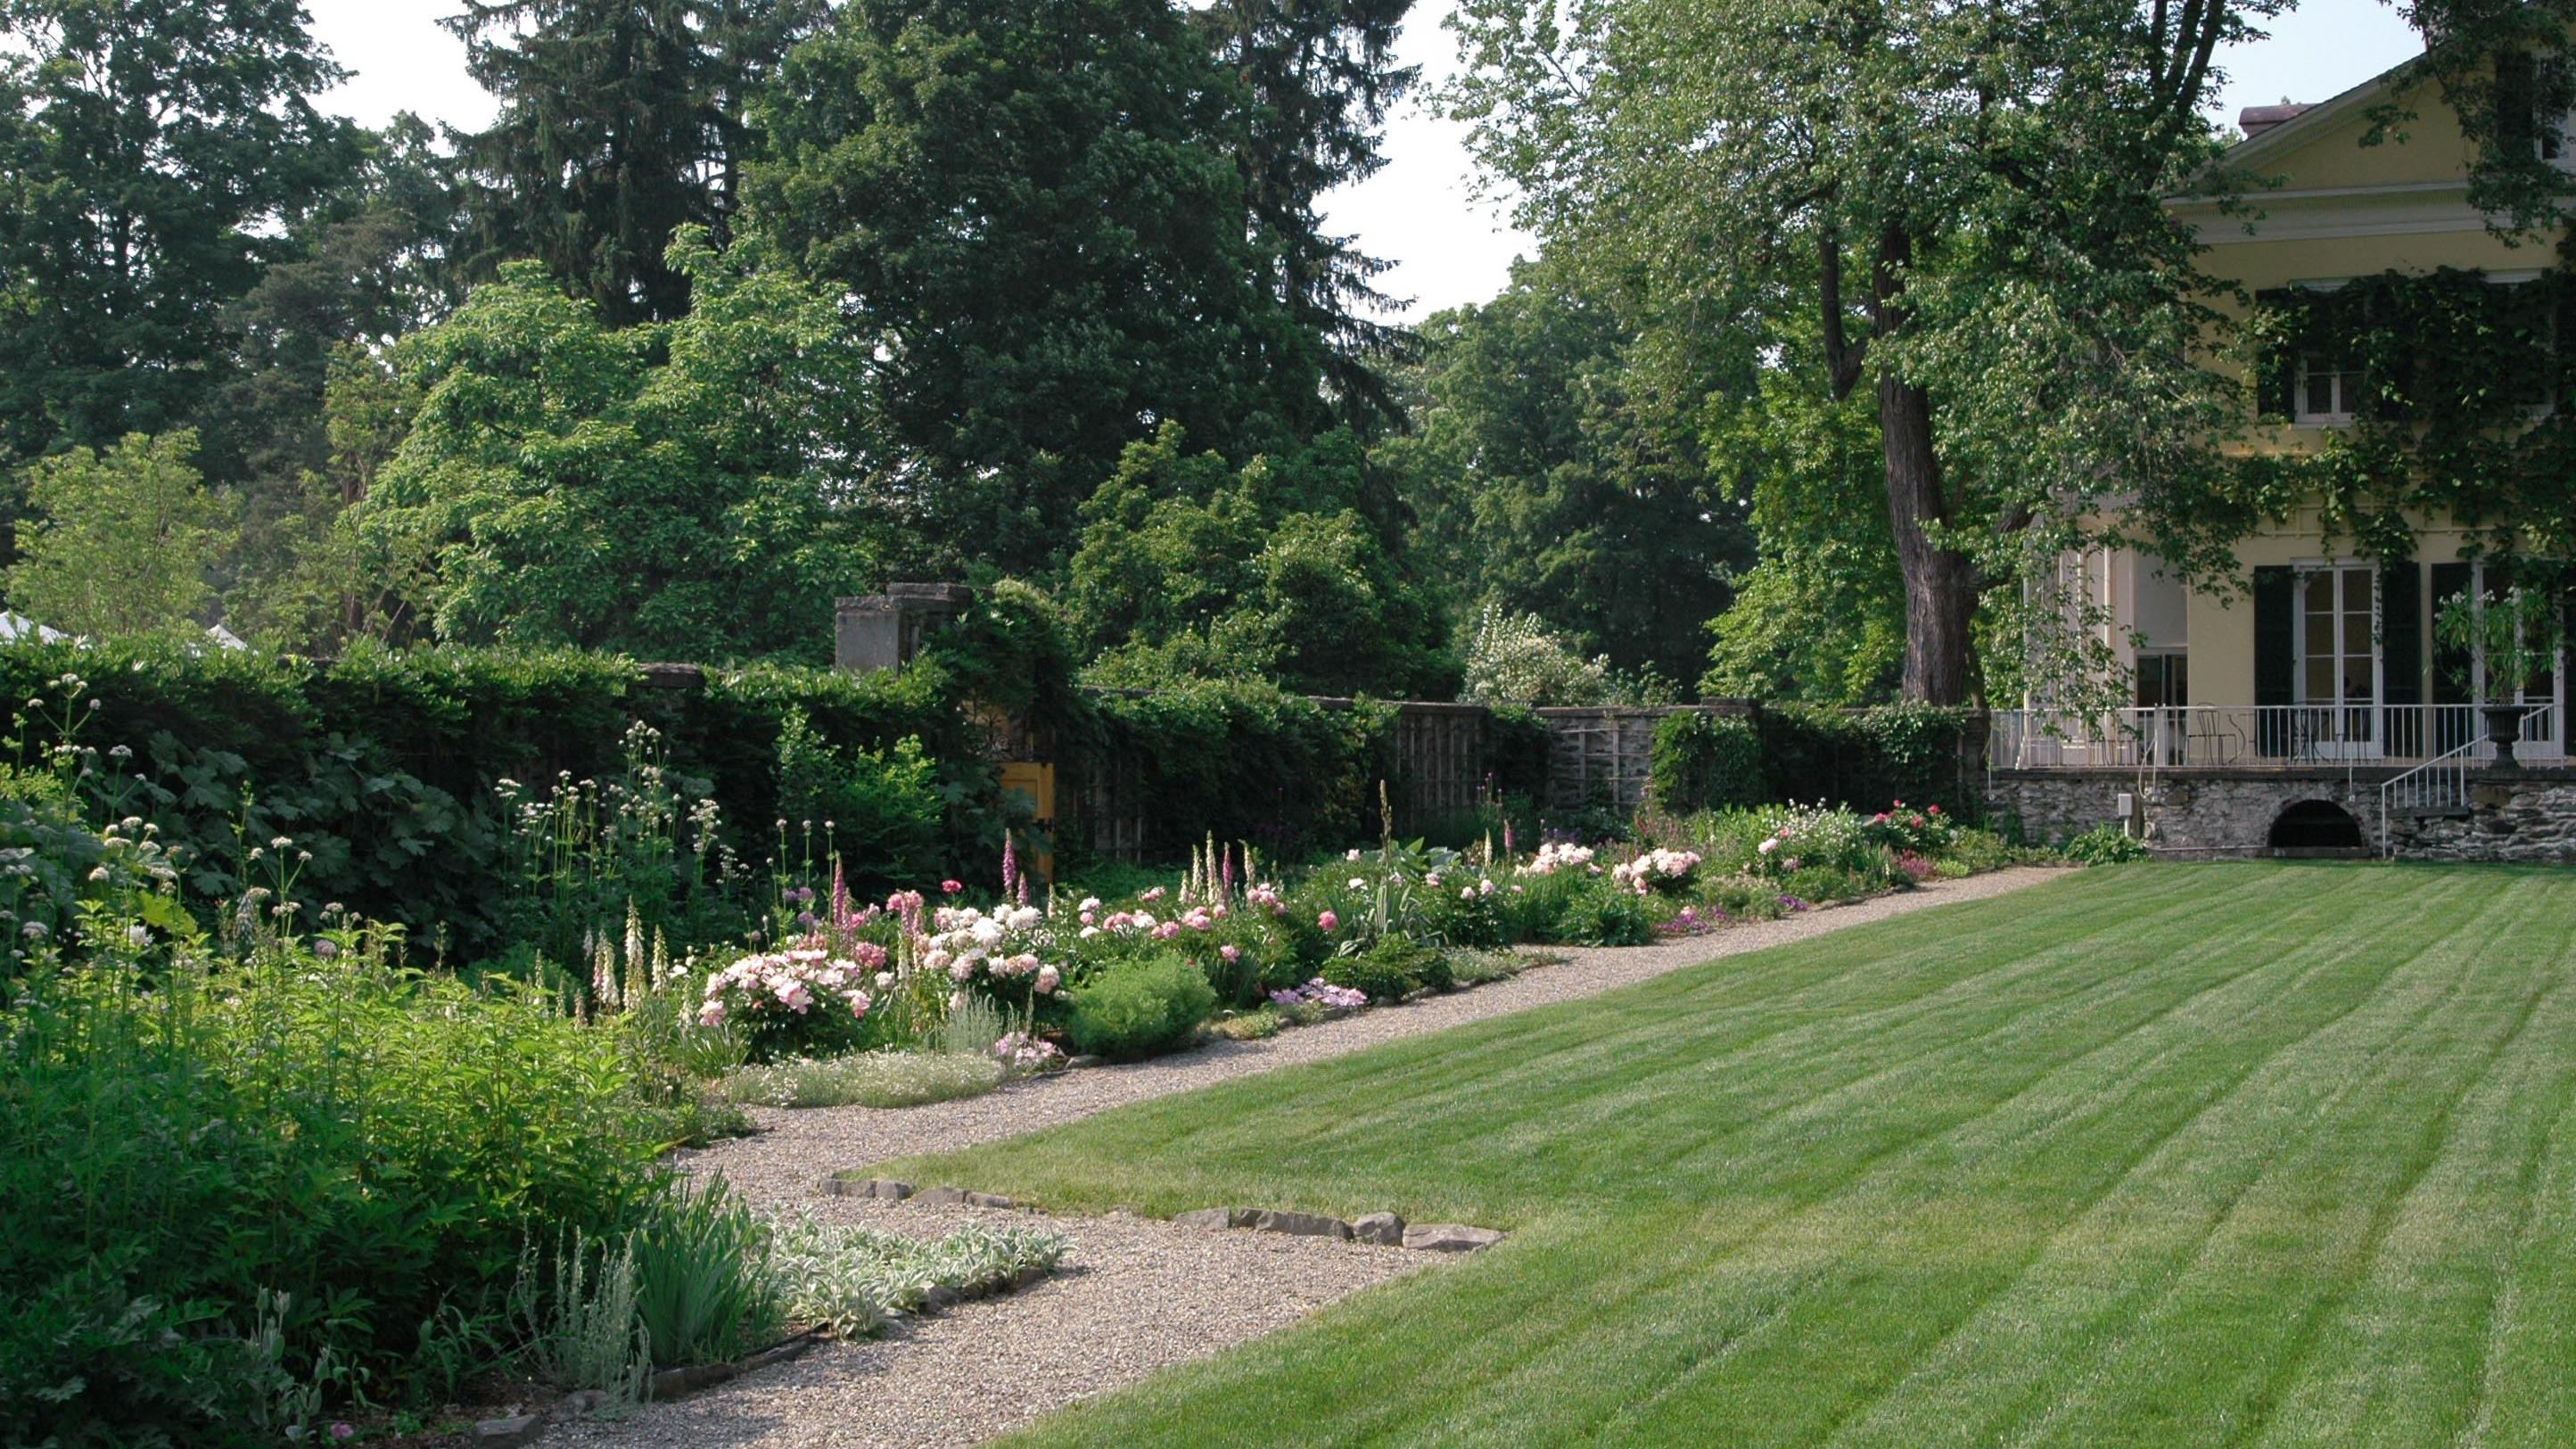 34 ideas for privacy in the garden with a decorative.htm walled garden at bellefield  u s national park service   walled garden at bellefield  u s